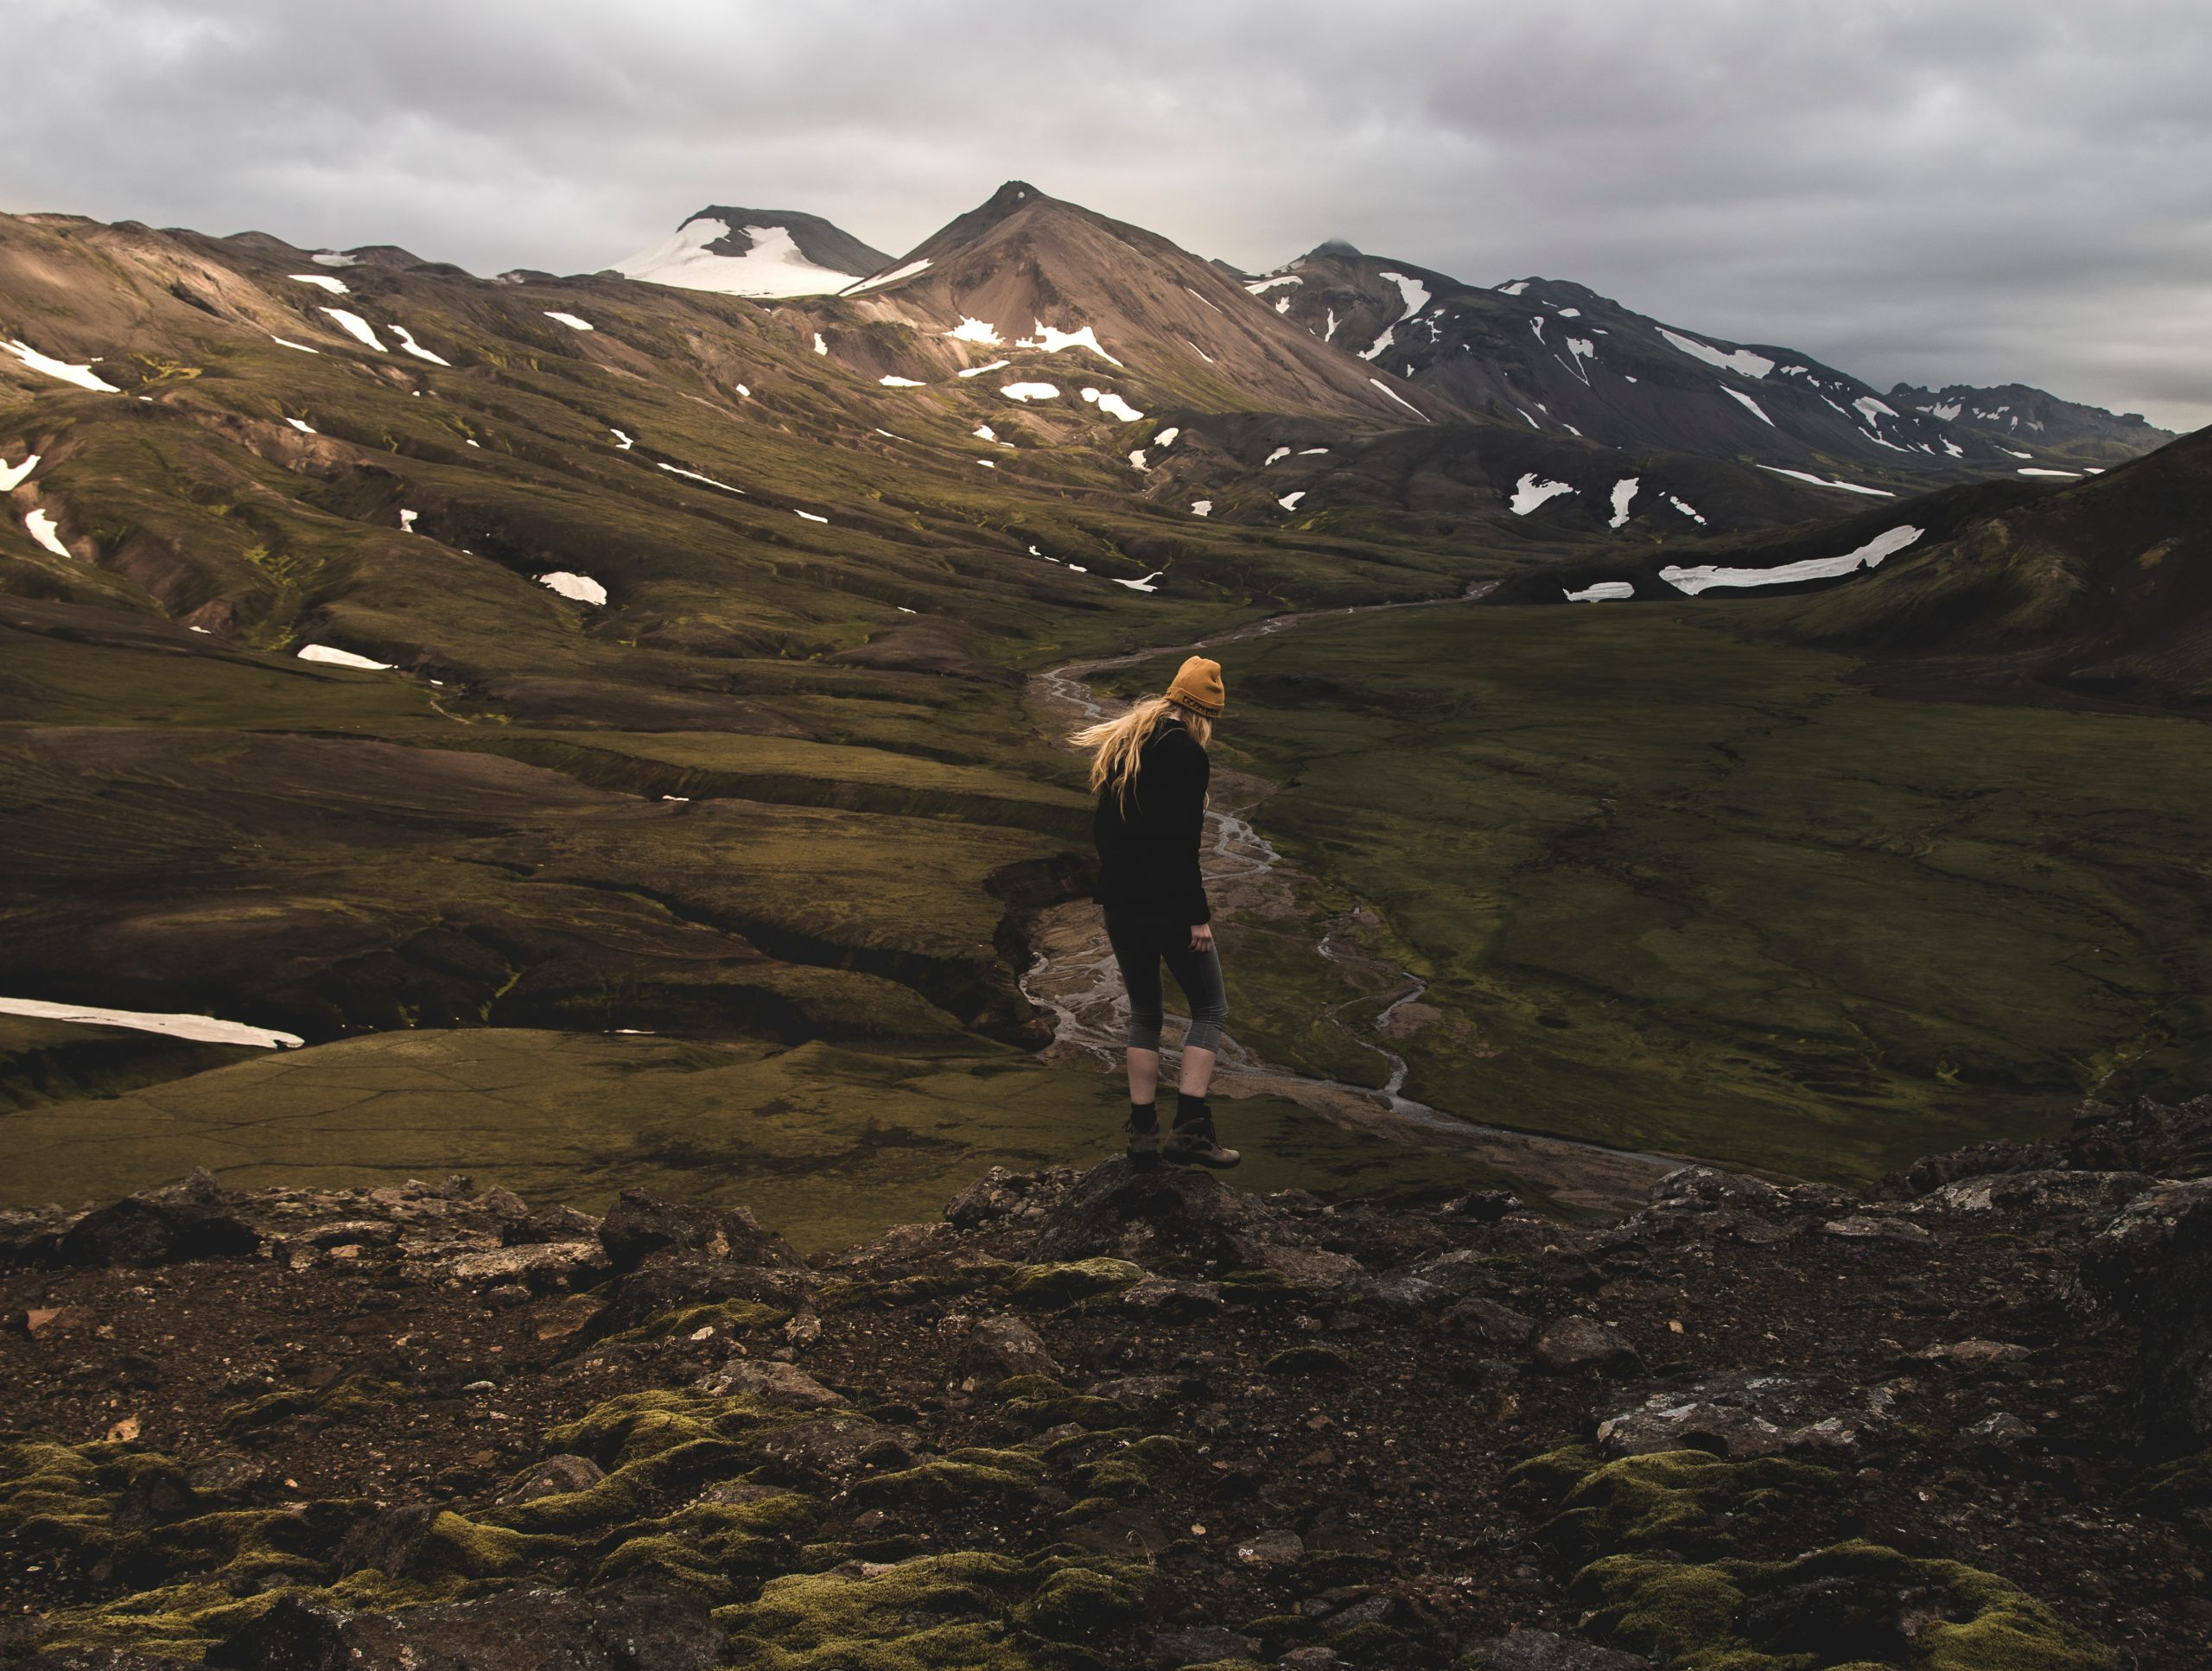 A woman hiking in Iceland's highlands.